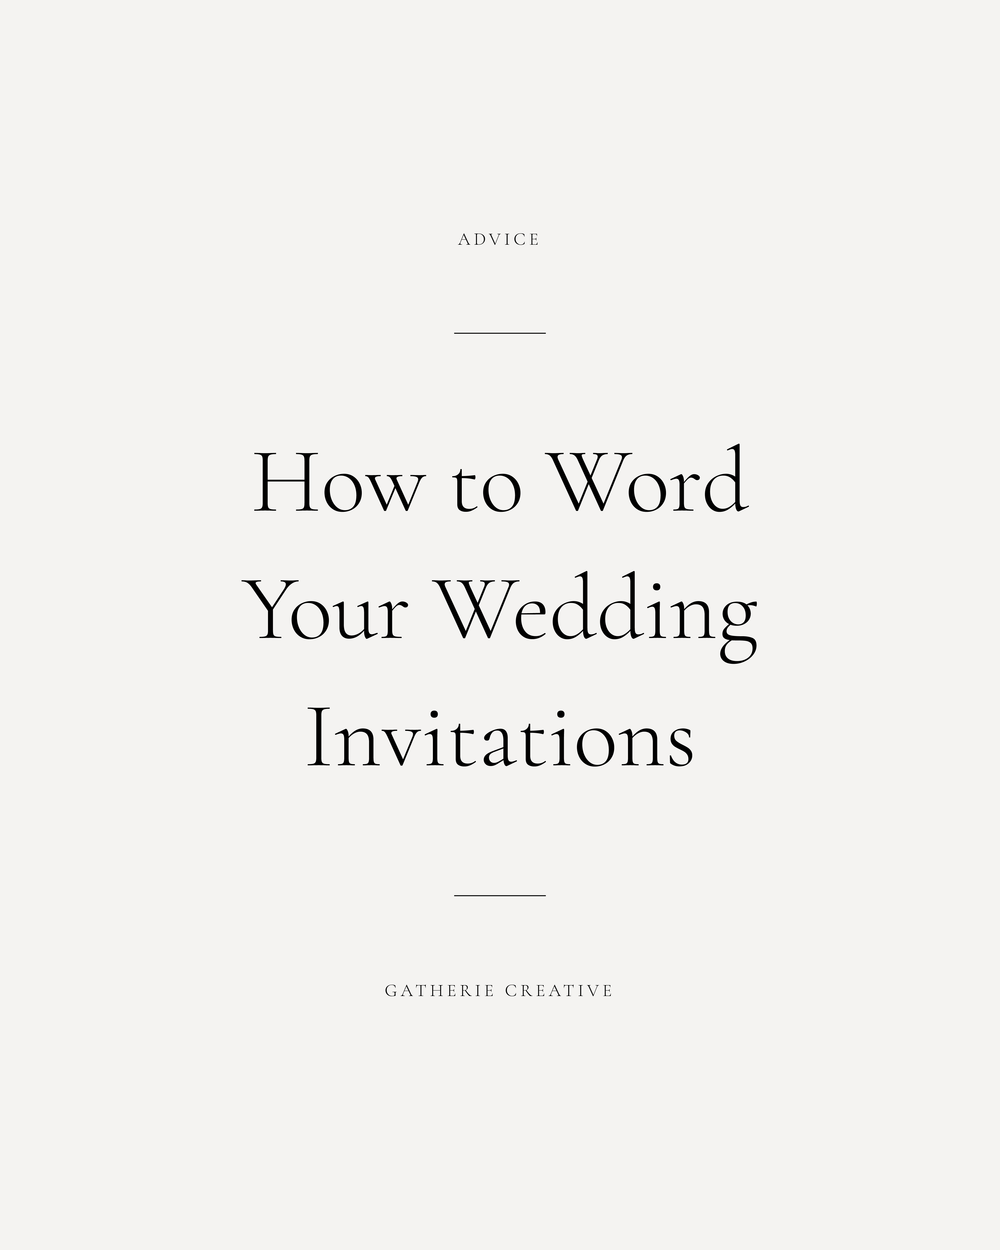 Gatherie creative wedding invitation wording etiquette filmwisefo